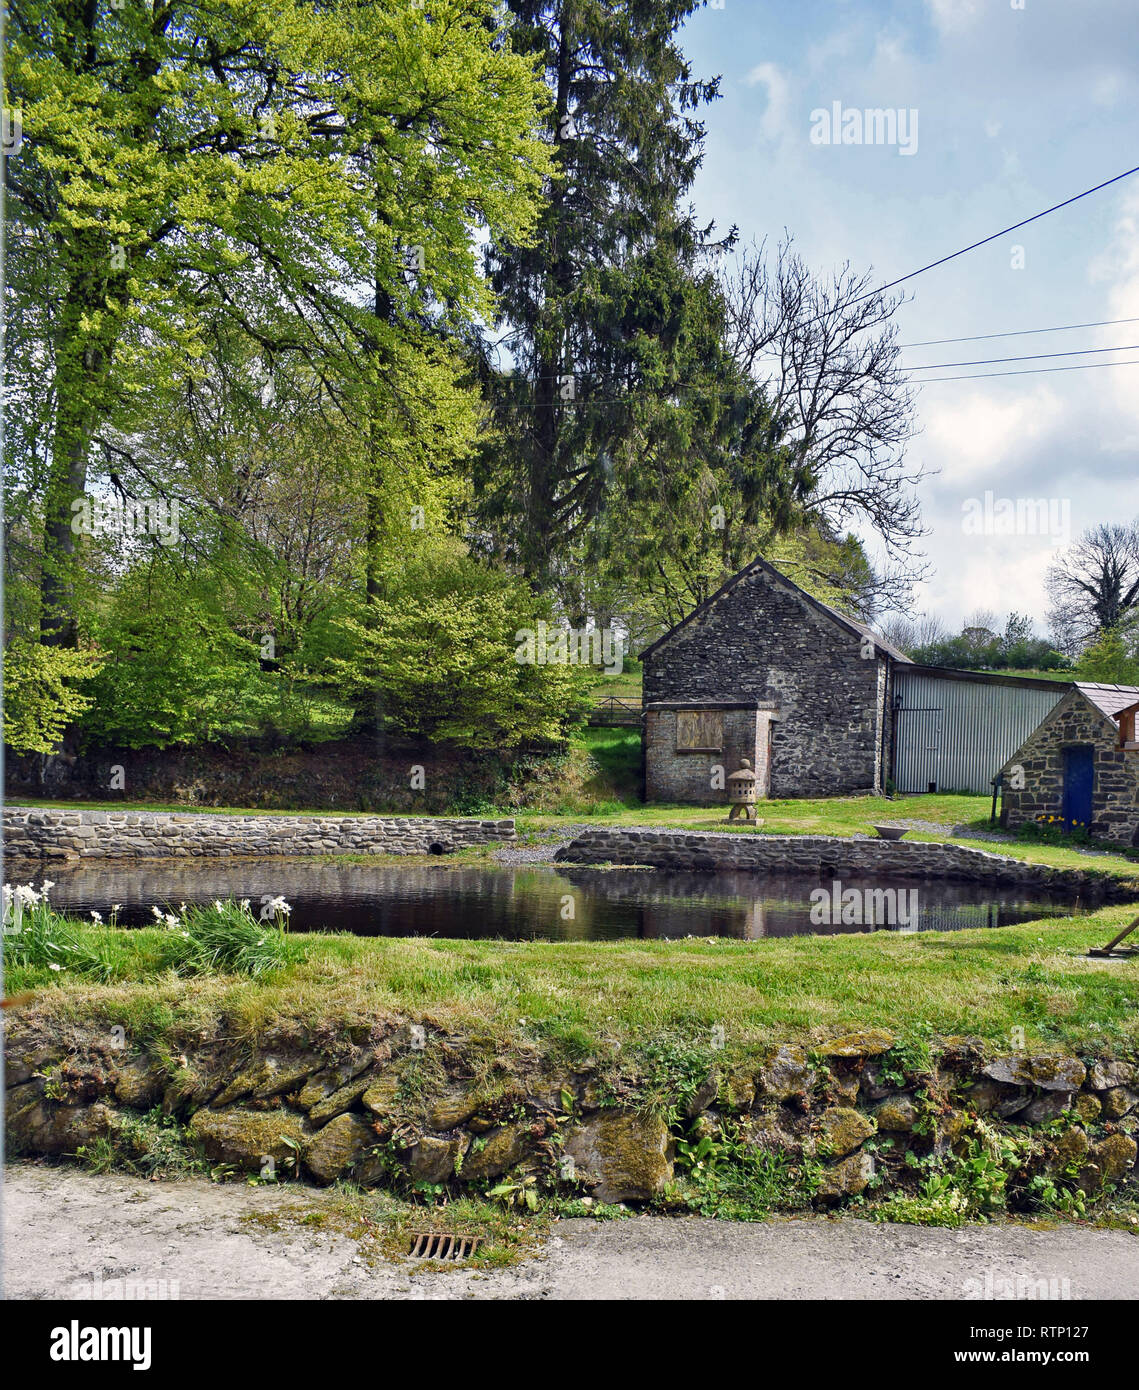 A countryside view of a large pond in front of the green trees and outbuildings - Stock Image